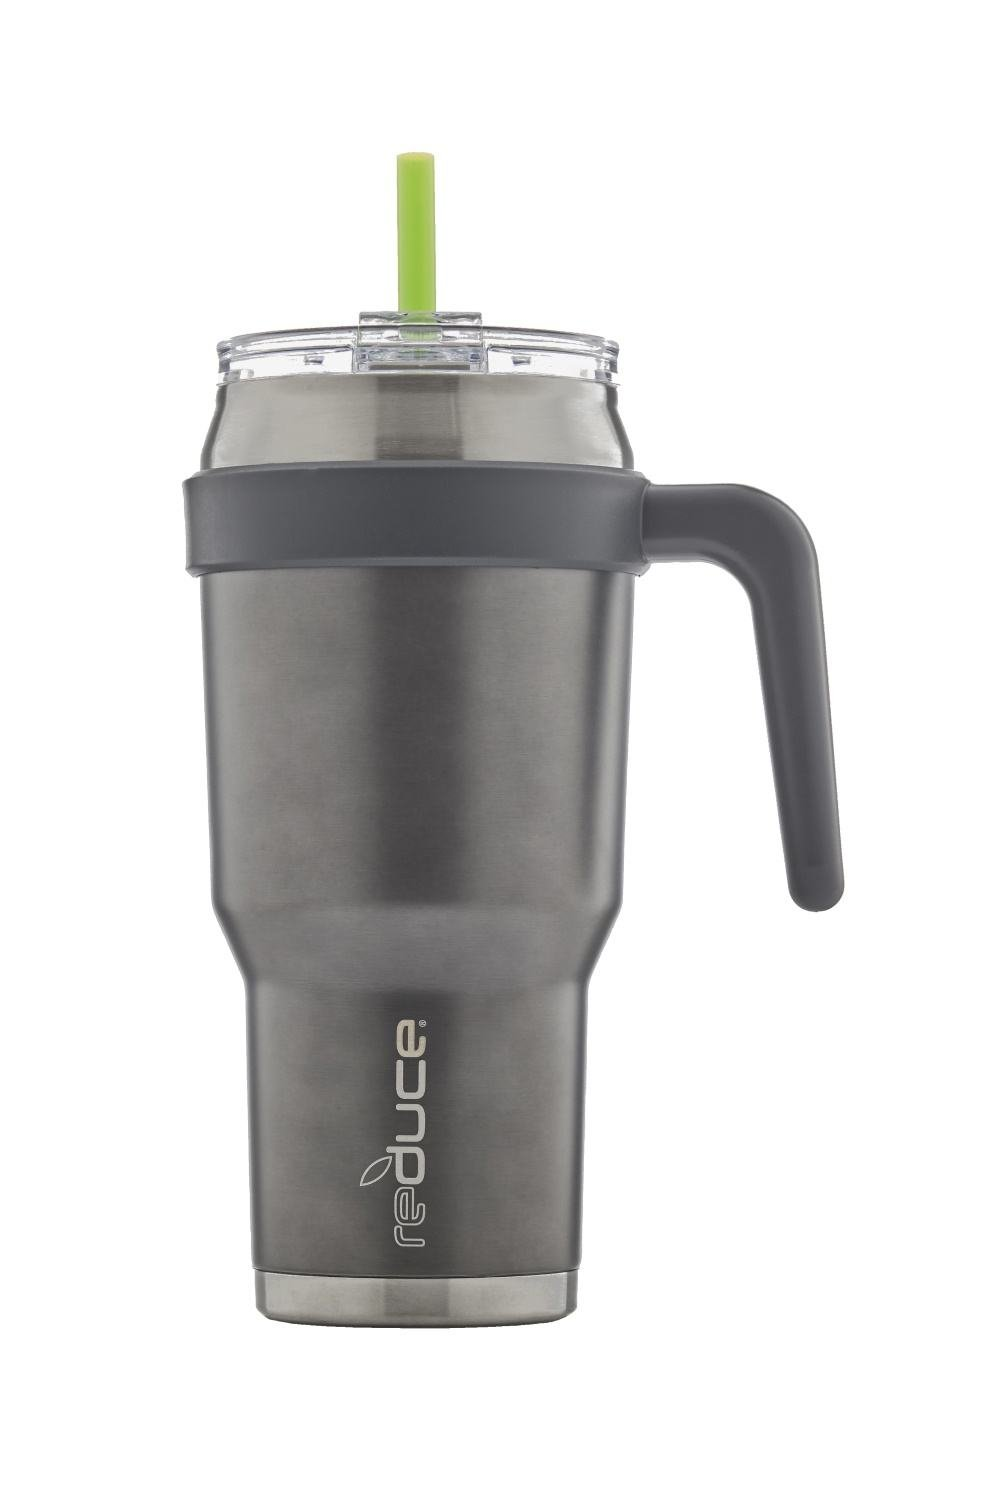 reduce COLD-1 Extra Large Vacuum Insulated Thermal Mug with Slender Base, 3-in-1 Lid & Straw, Ergonomic Handle, 40oz - Tasteless and Odorless Gray